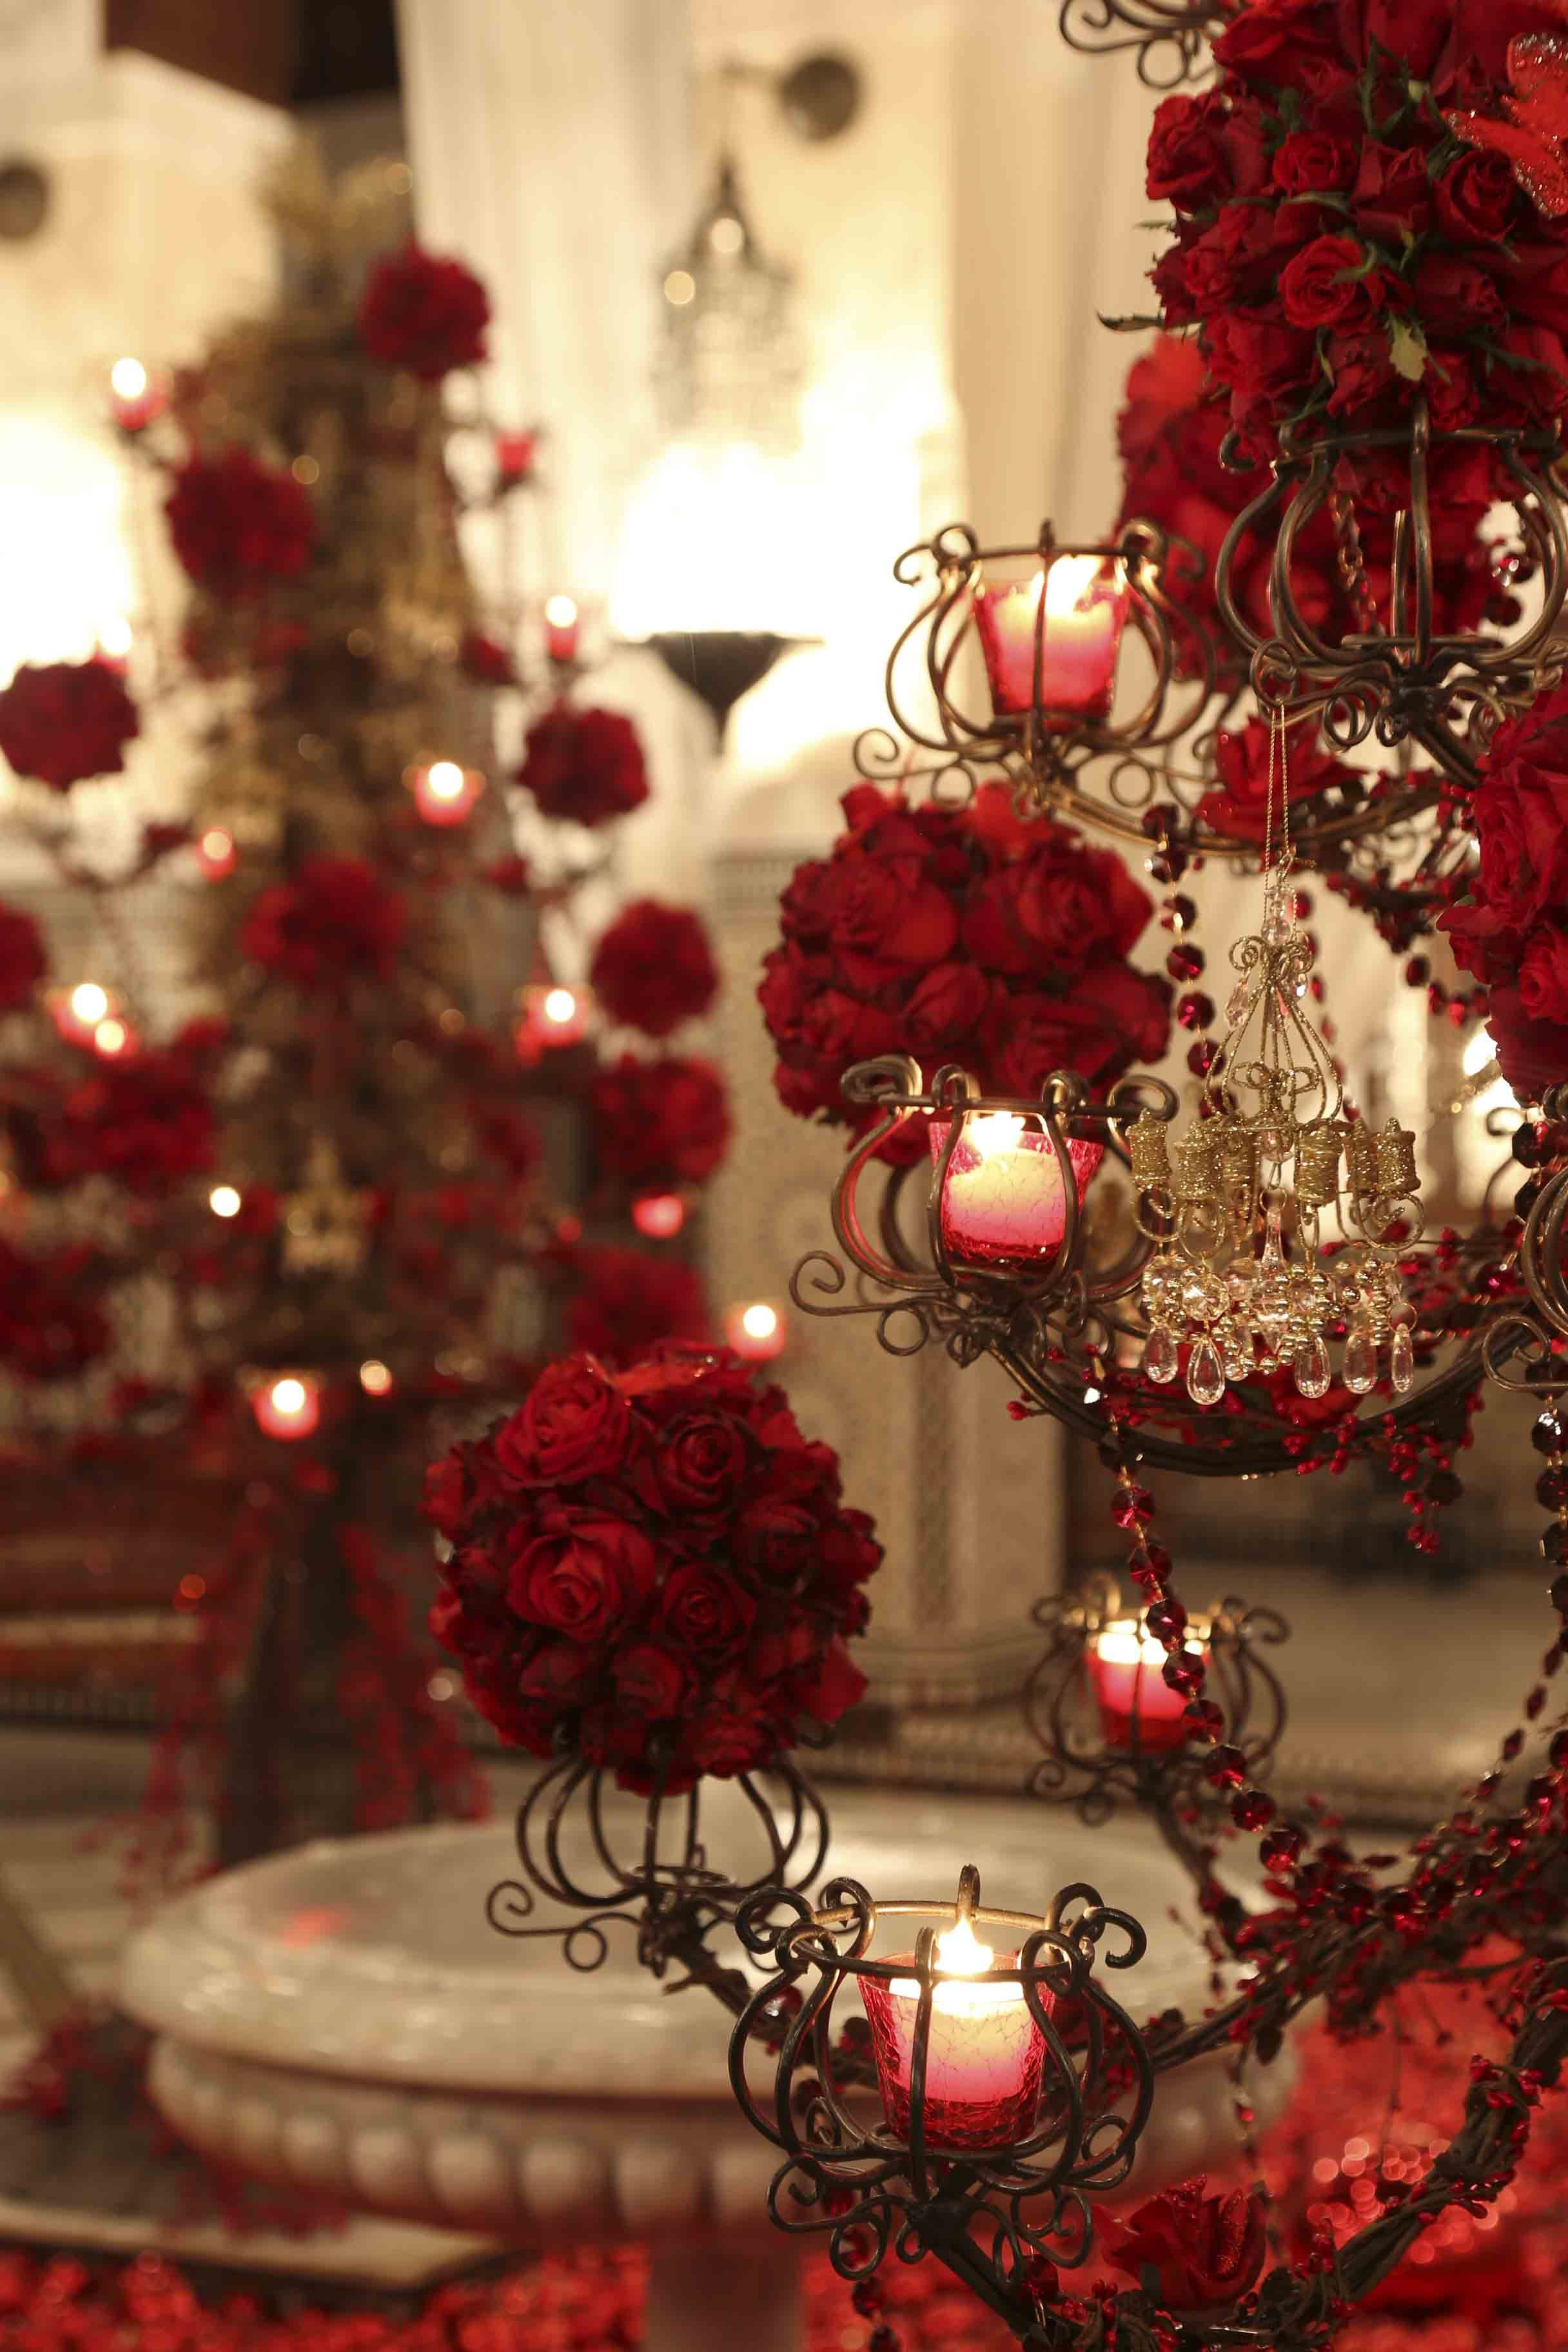 Look At The Wonderful Red Roses On The Golden Arabesque Christmas Trees Beautiful Candles Candle Light Decor Christmas Decorations